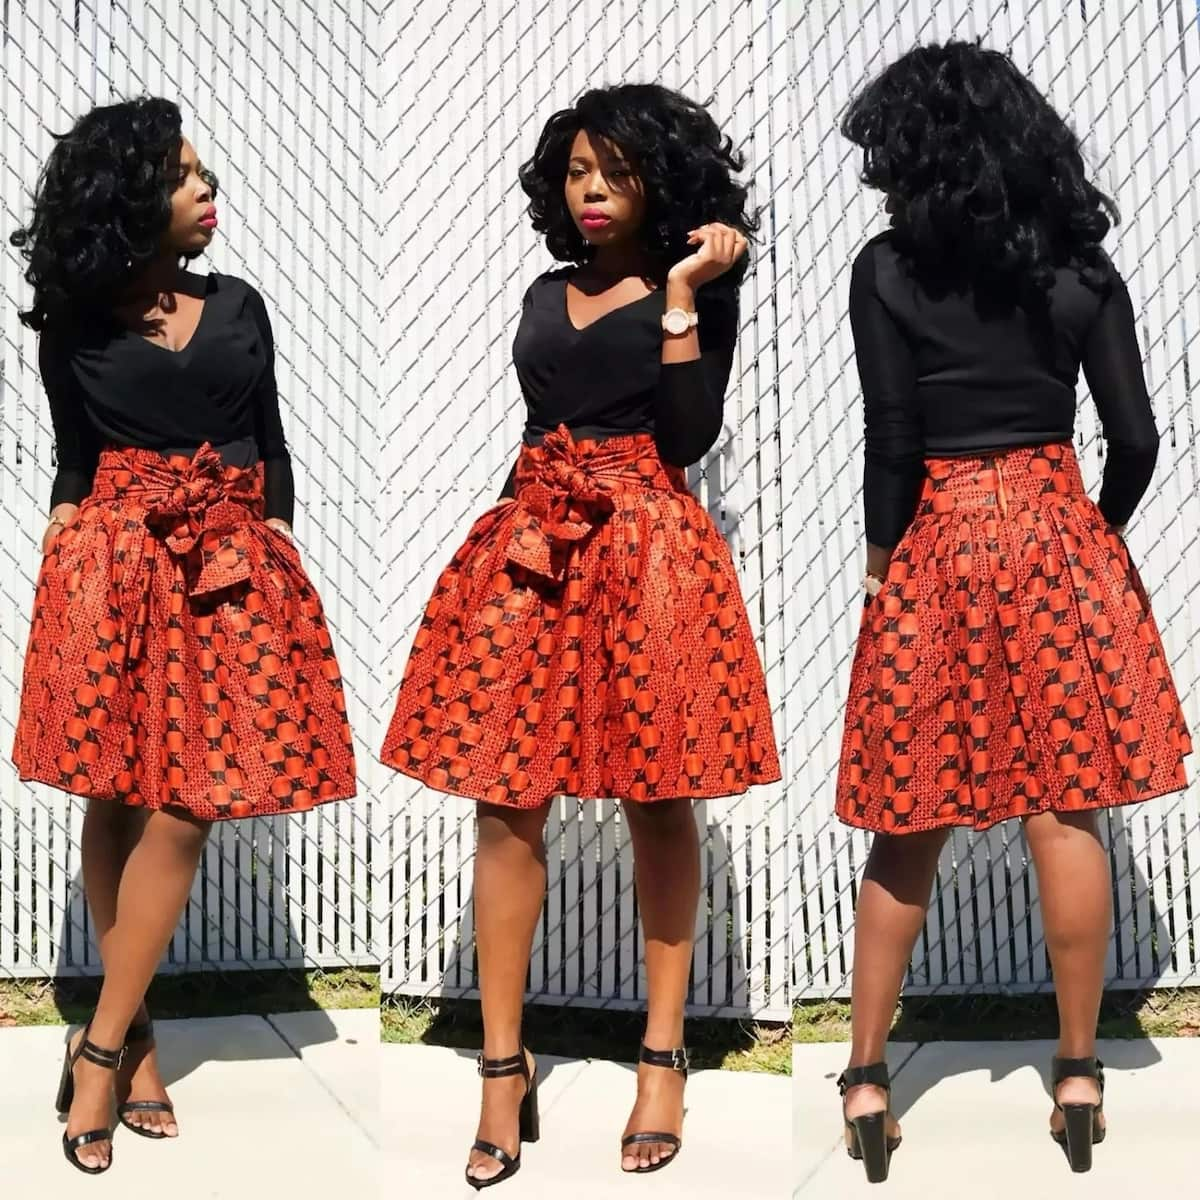 062e2190f16 5 types of skirts any Kenyan girl should own in 2018 ▷ Tuko.co.ke